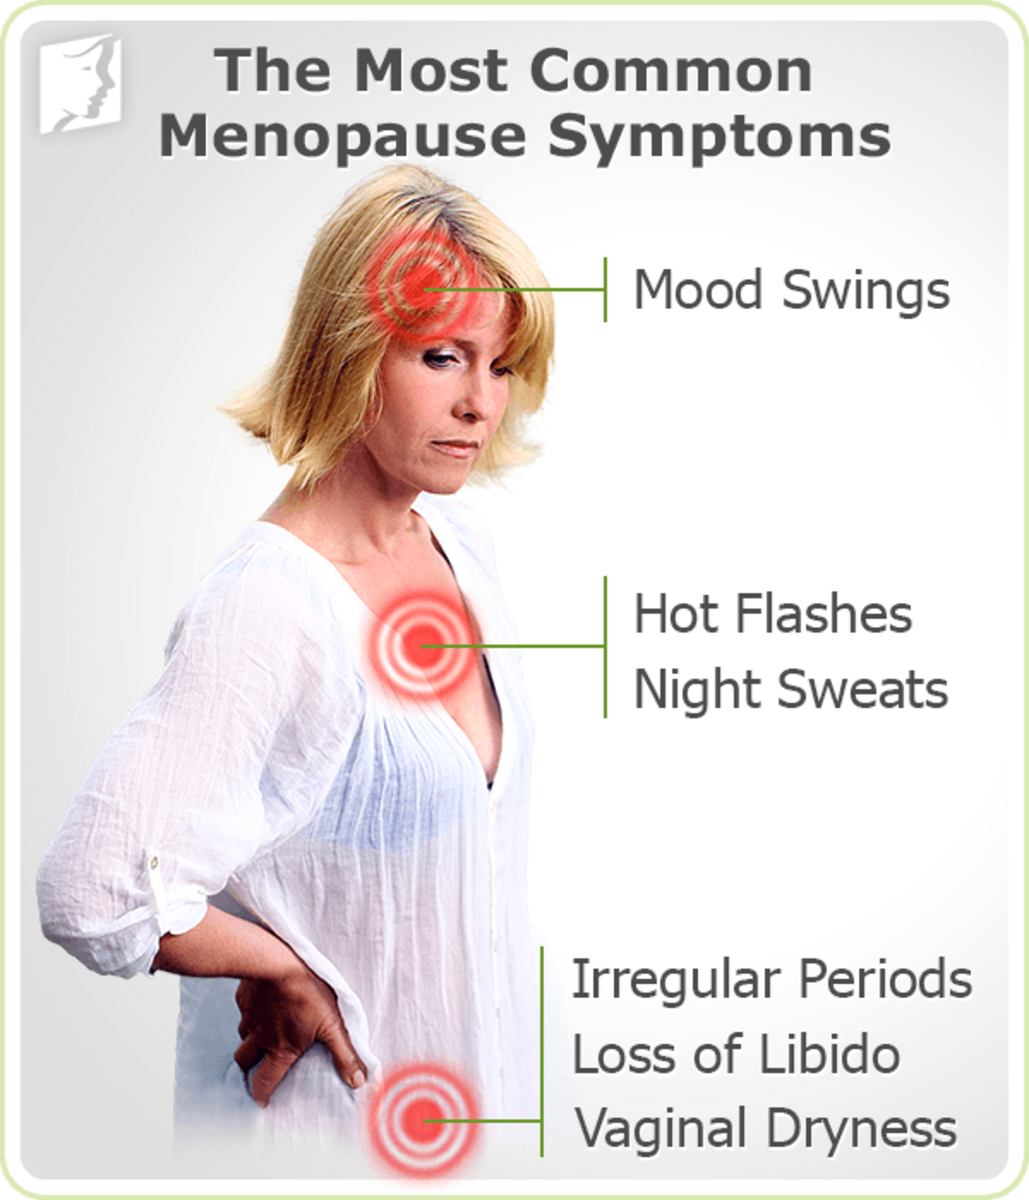 How Technology Can Help You With Menopause?